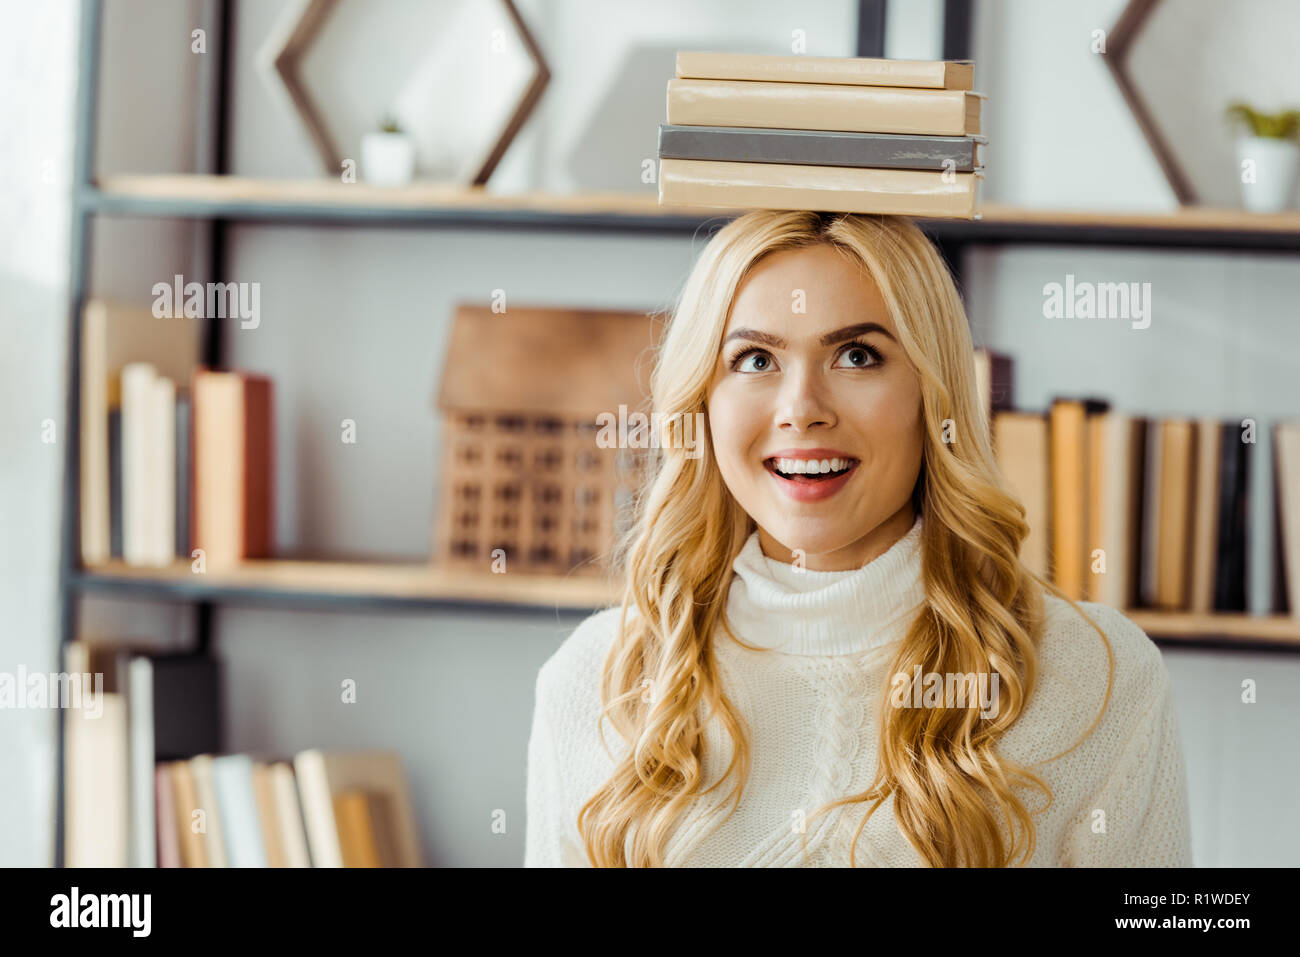 close up of funny smiling woman with books on head - Stock Image